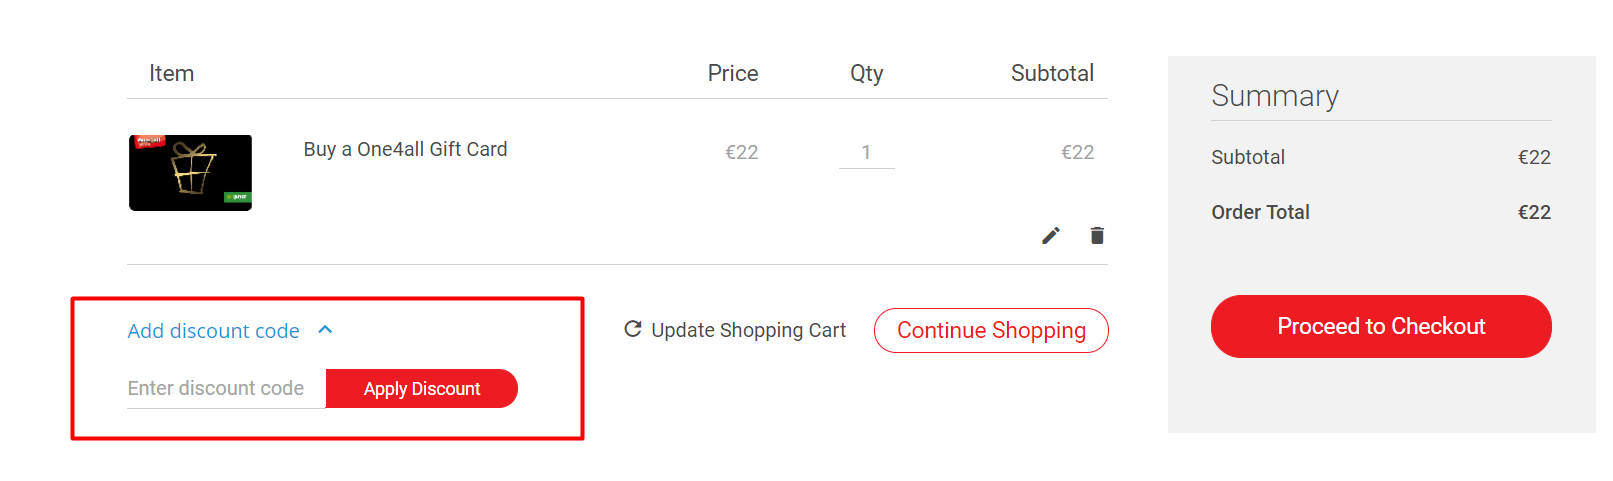 How do I use my One4All discount code?